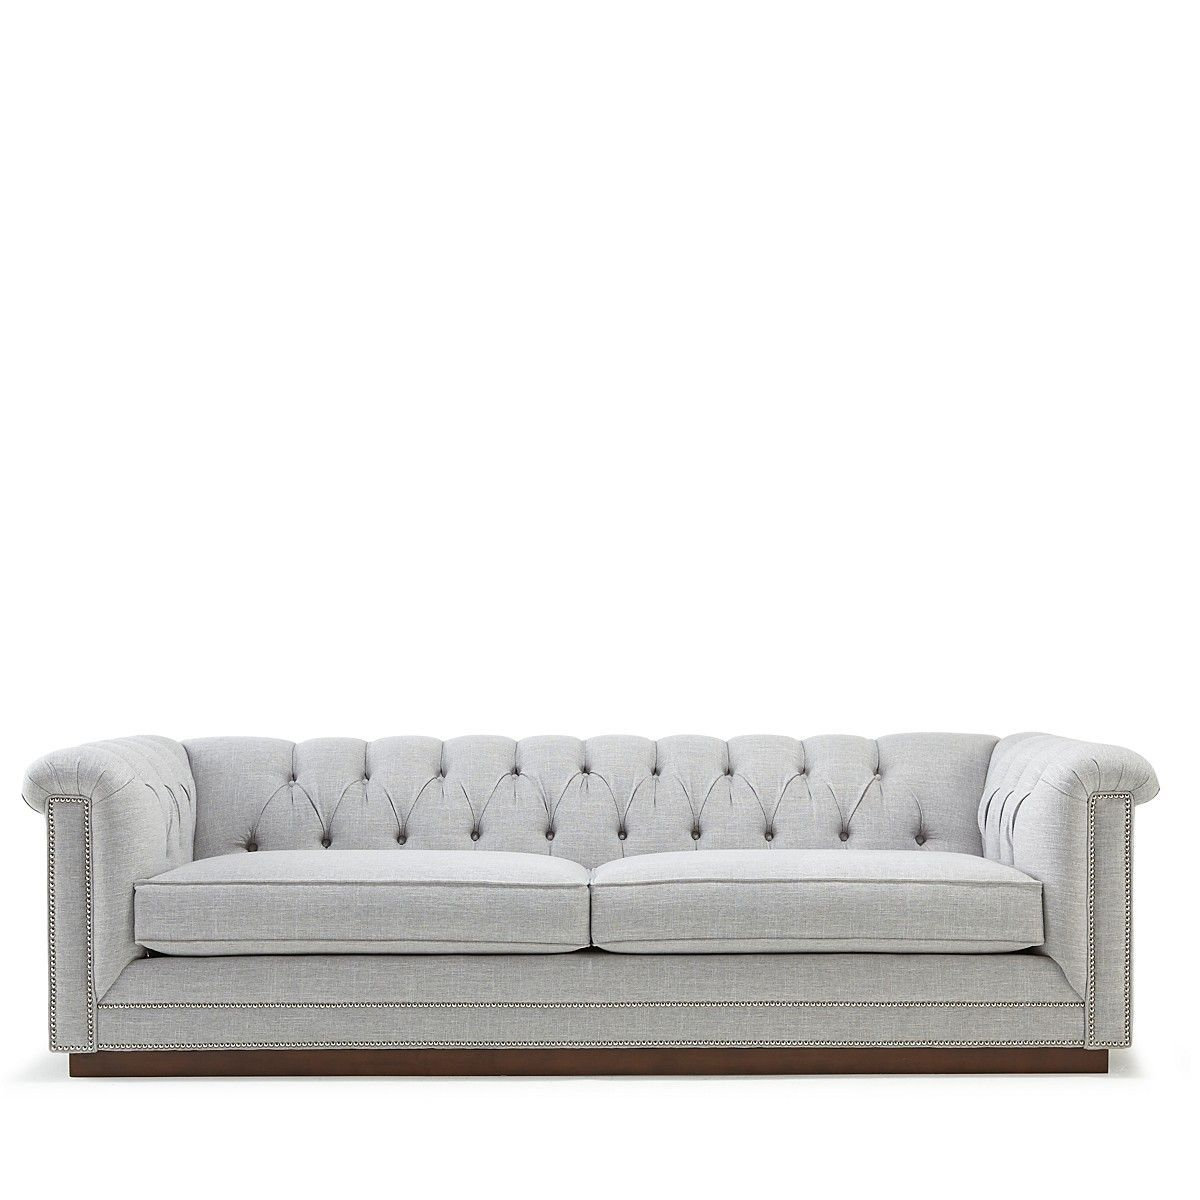 Mitchell gold sofa reviews - Furniture Mitchell Gold